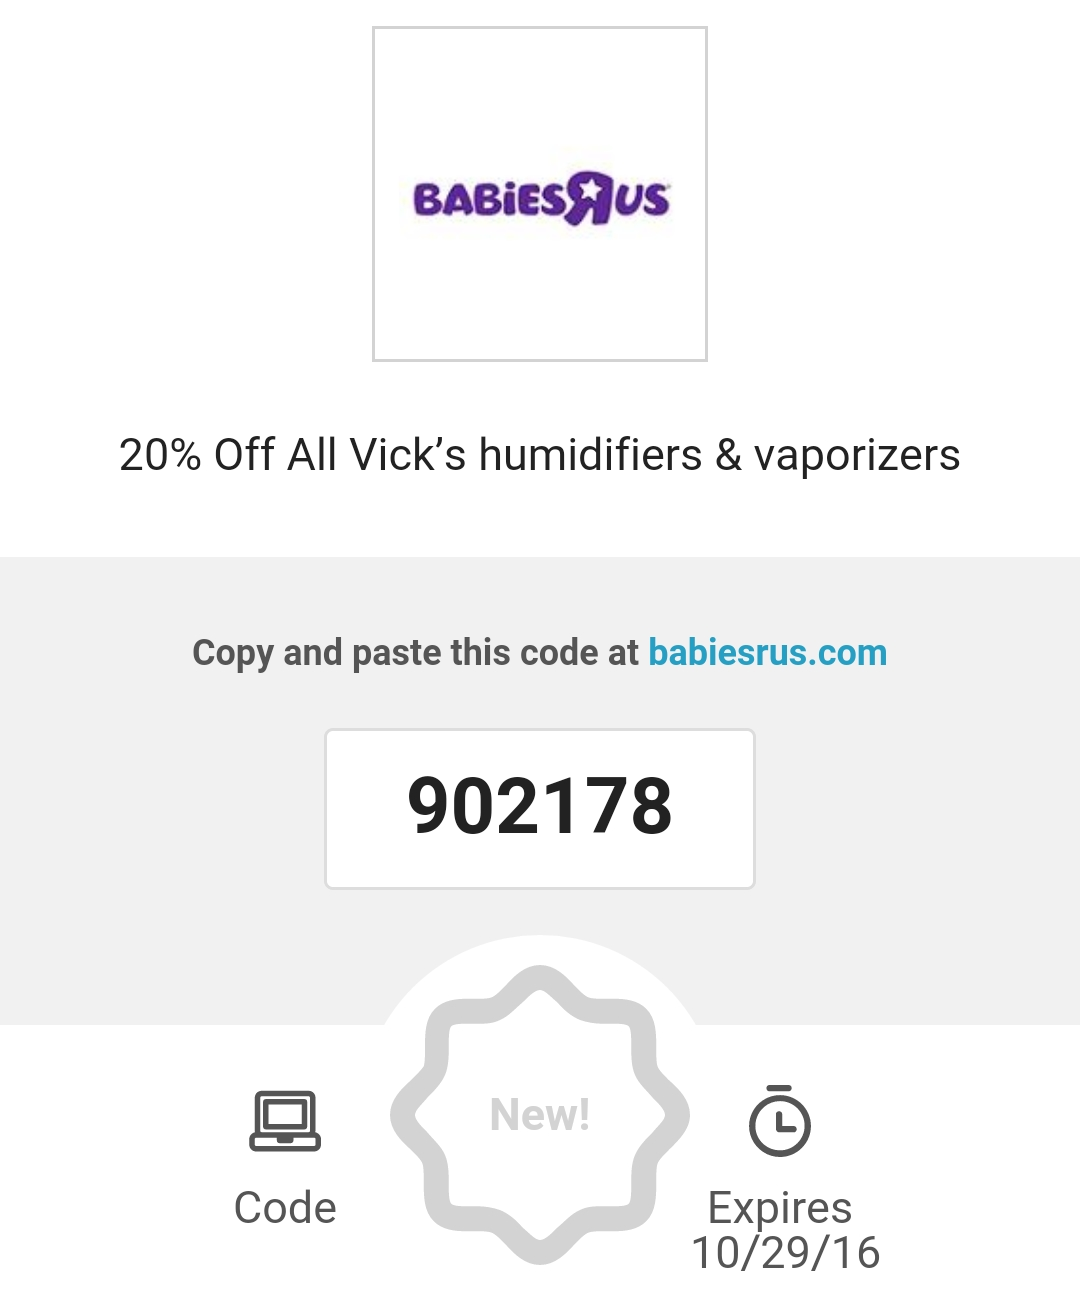 20% Off All Vick's Humidifiers & Vaporizers at Babies R Us #481C7D